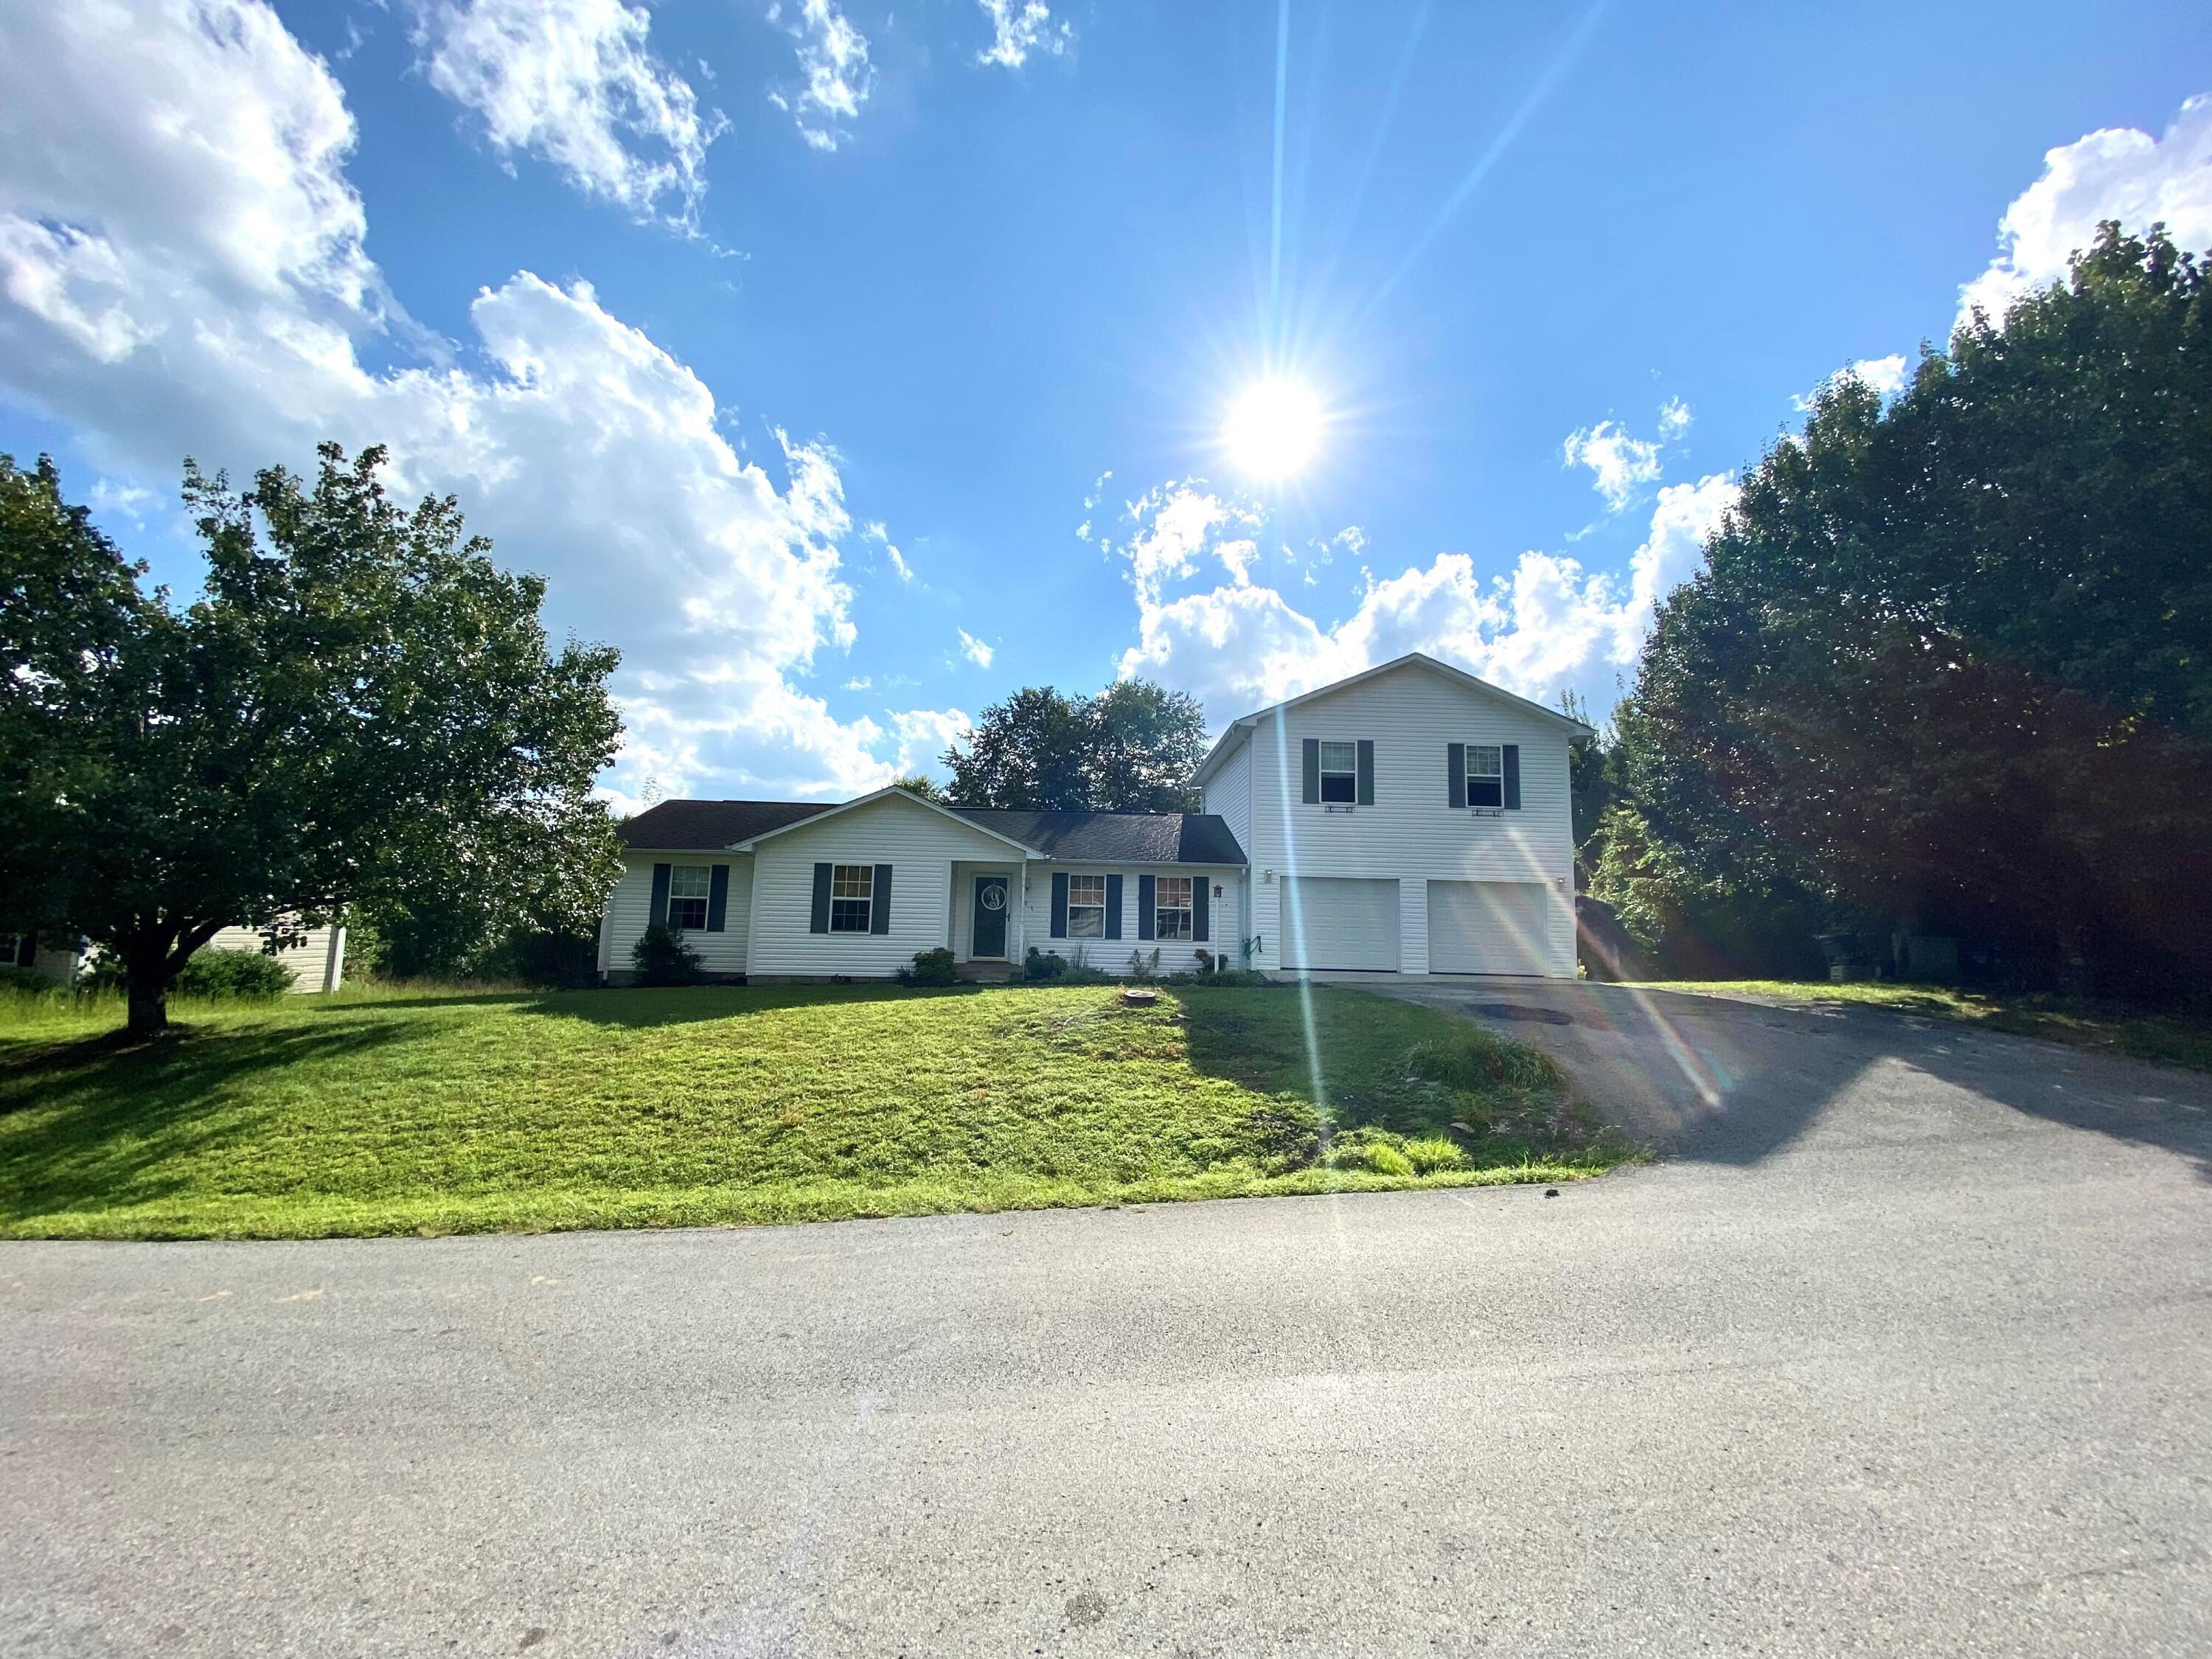 777 Hopkins Cemetery Road, Lily, KY 40740